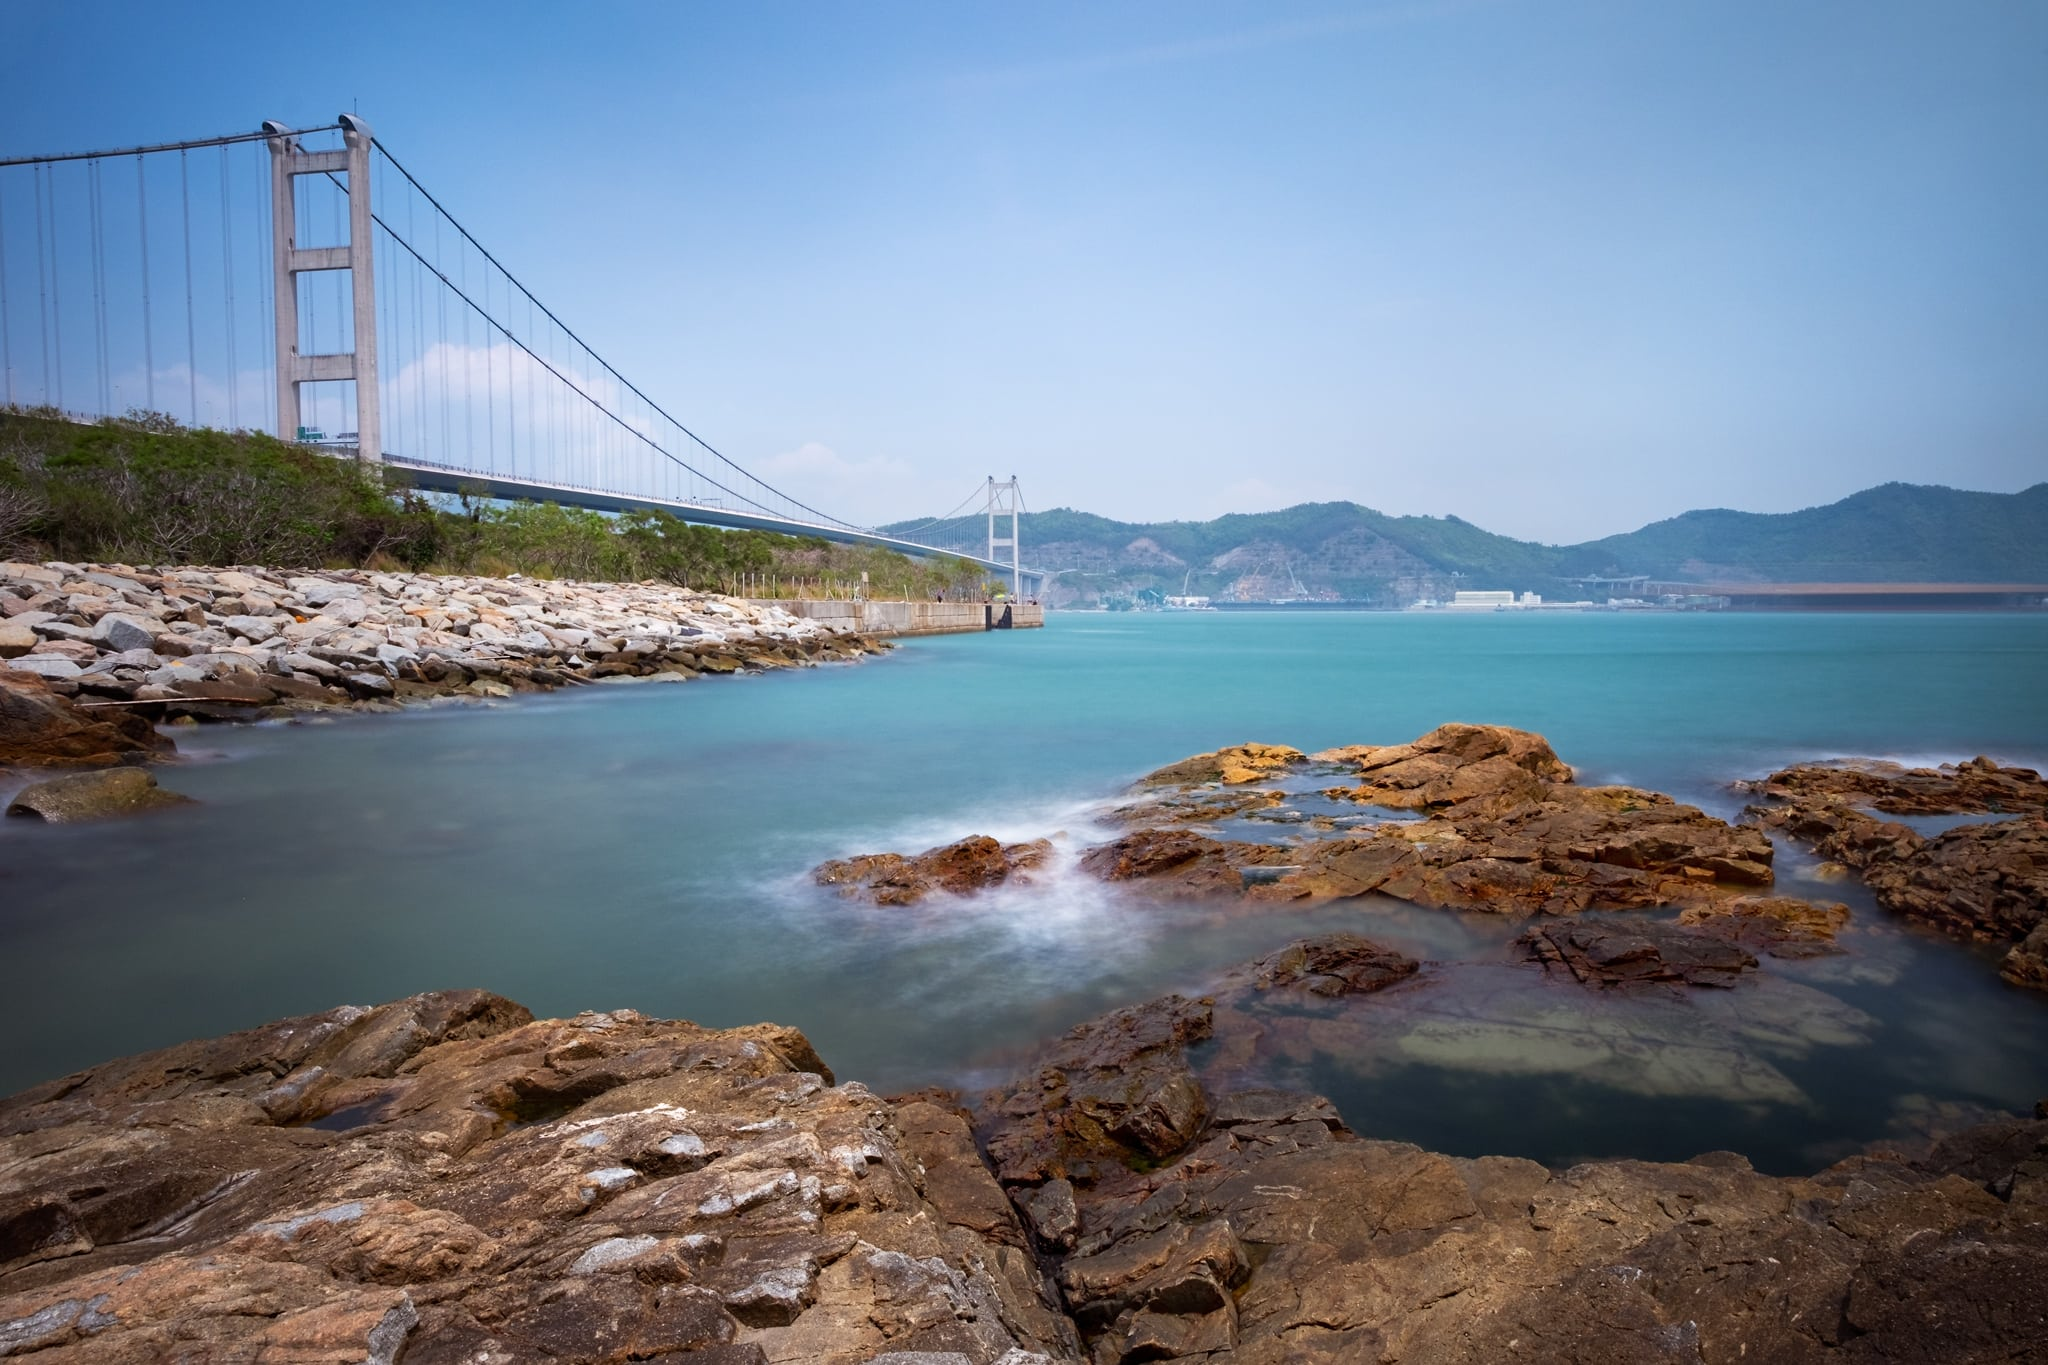 Tsing Ma Bridge. Ma Wan Island, Hong Kong. Sea water looks silky because of long exposure.